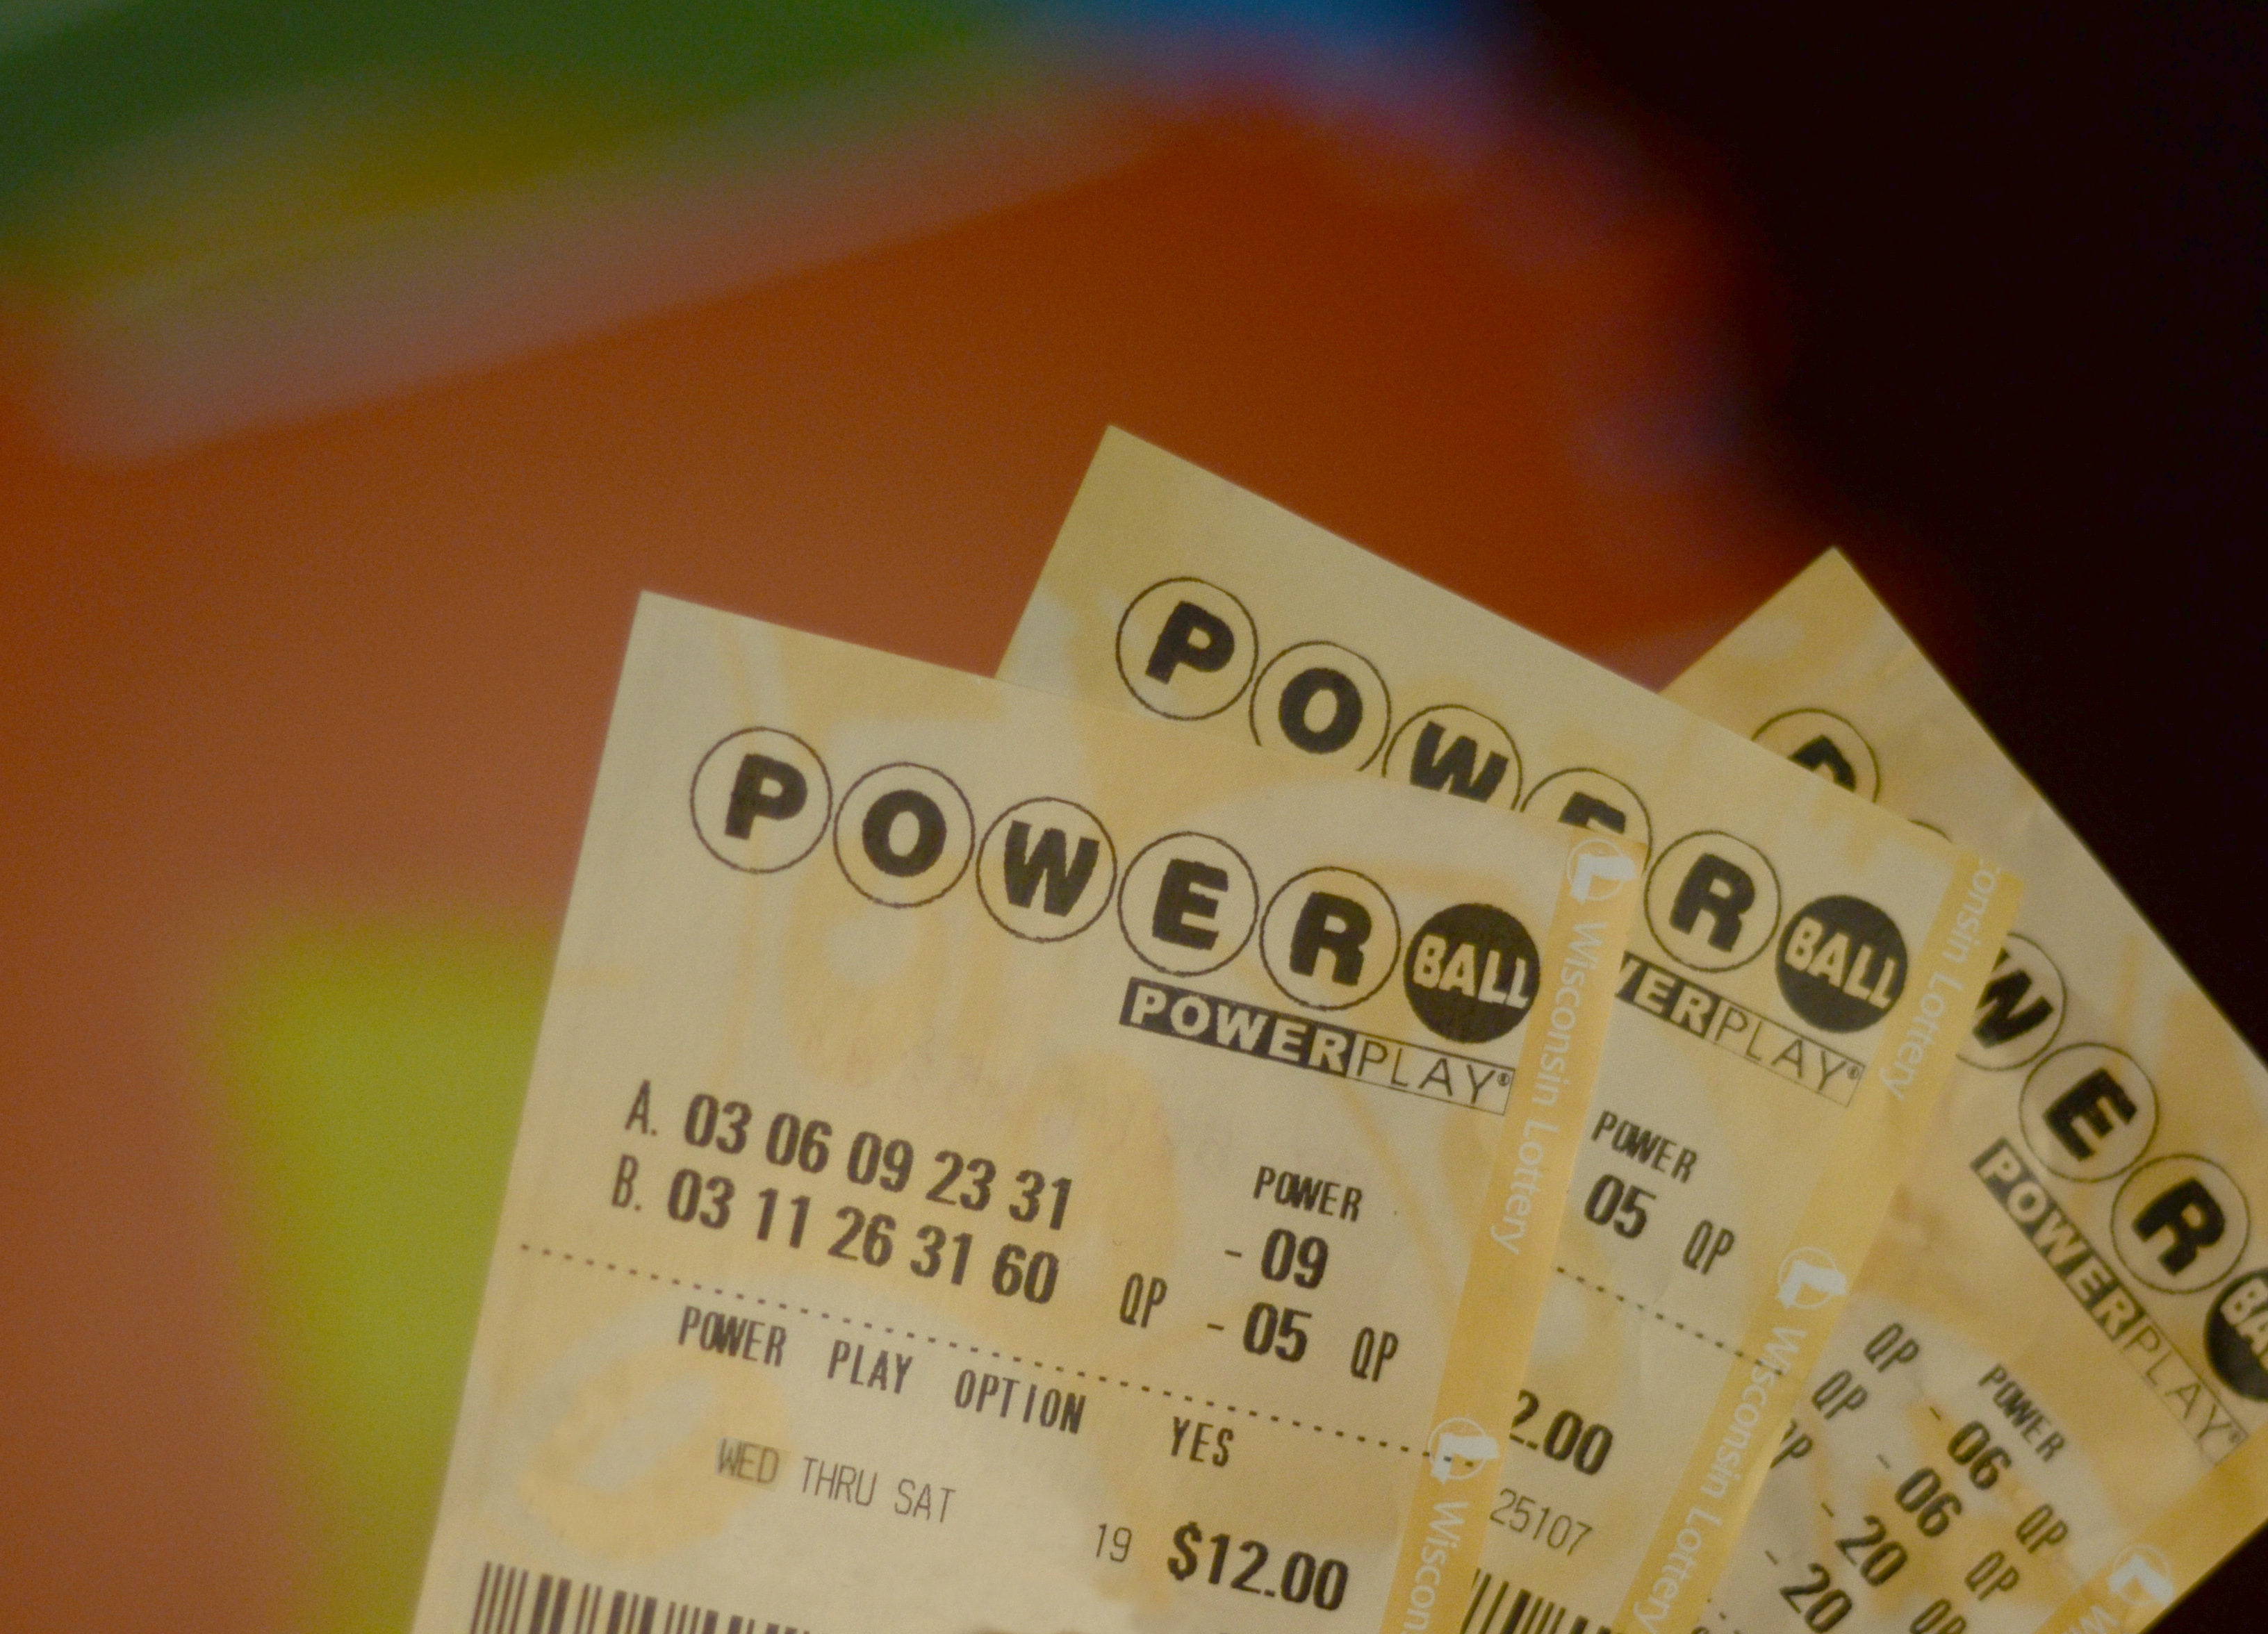 Winning 768m Powerball Ticket Sold At Speedway In New Berlin